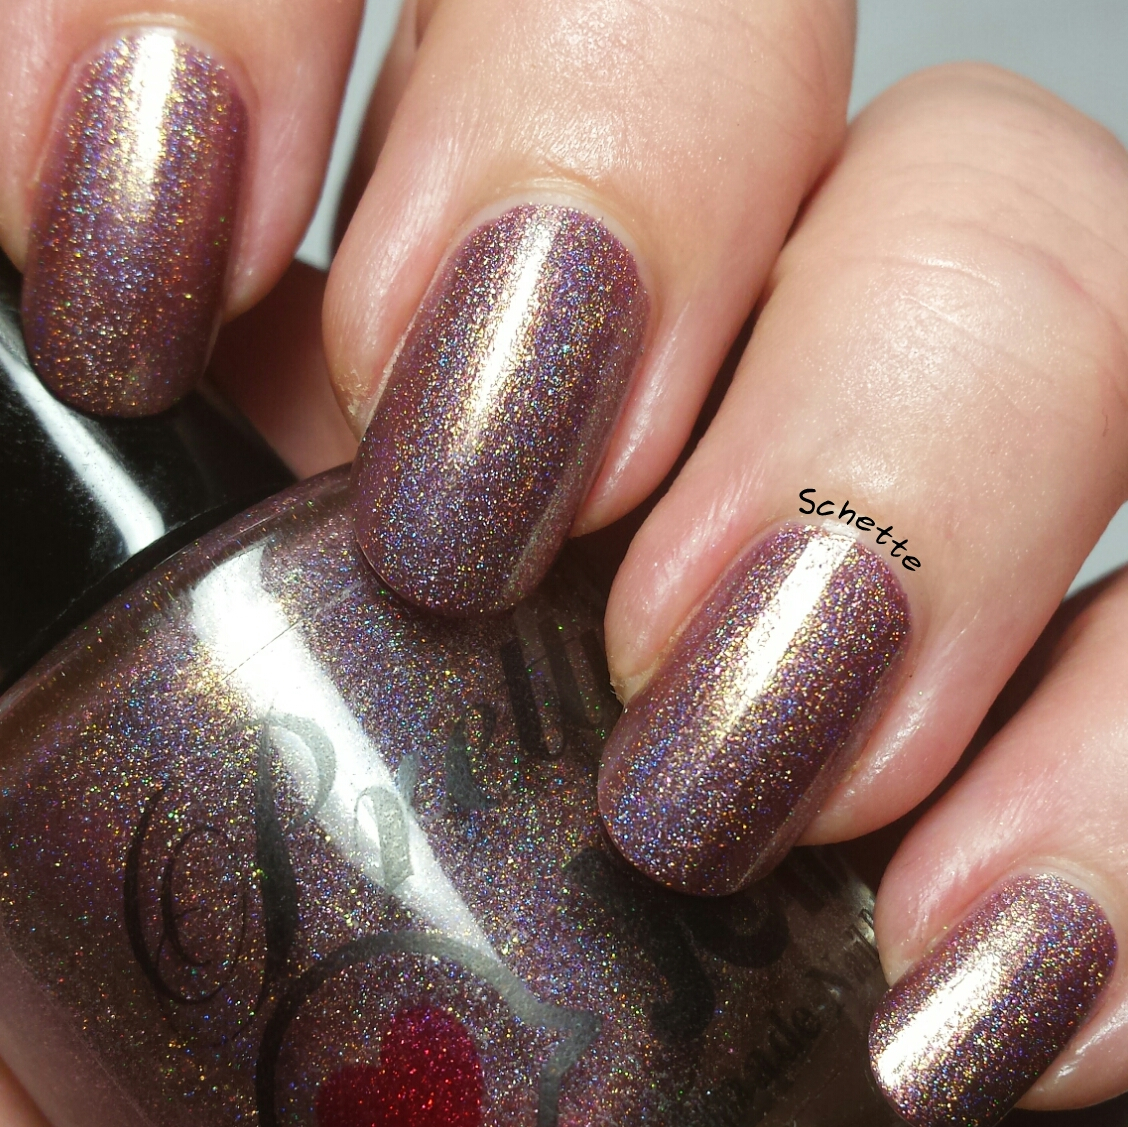 Les Vernis Pretty Jelly Brocade, Velvet et Embroidery